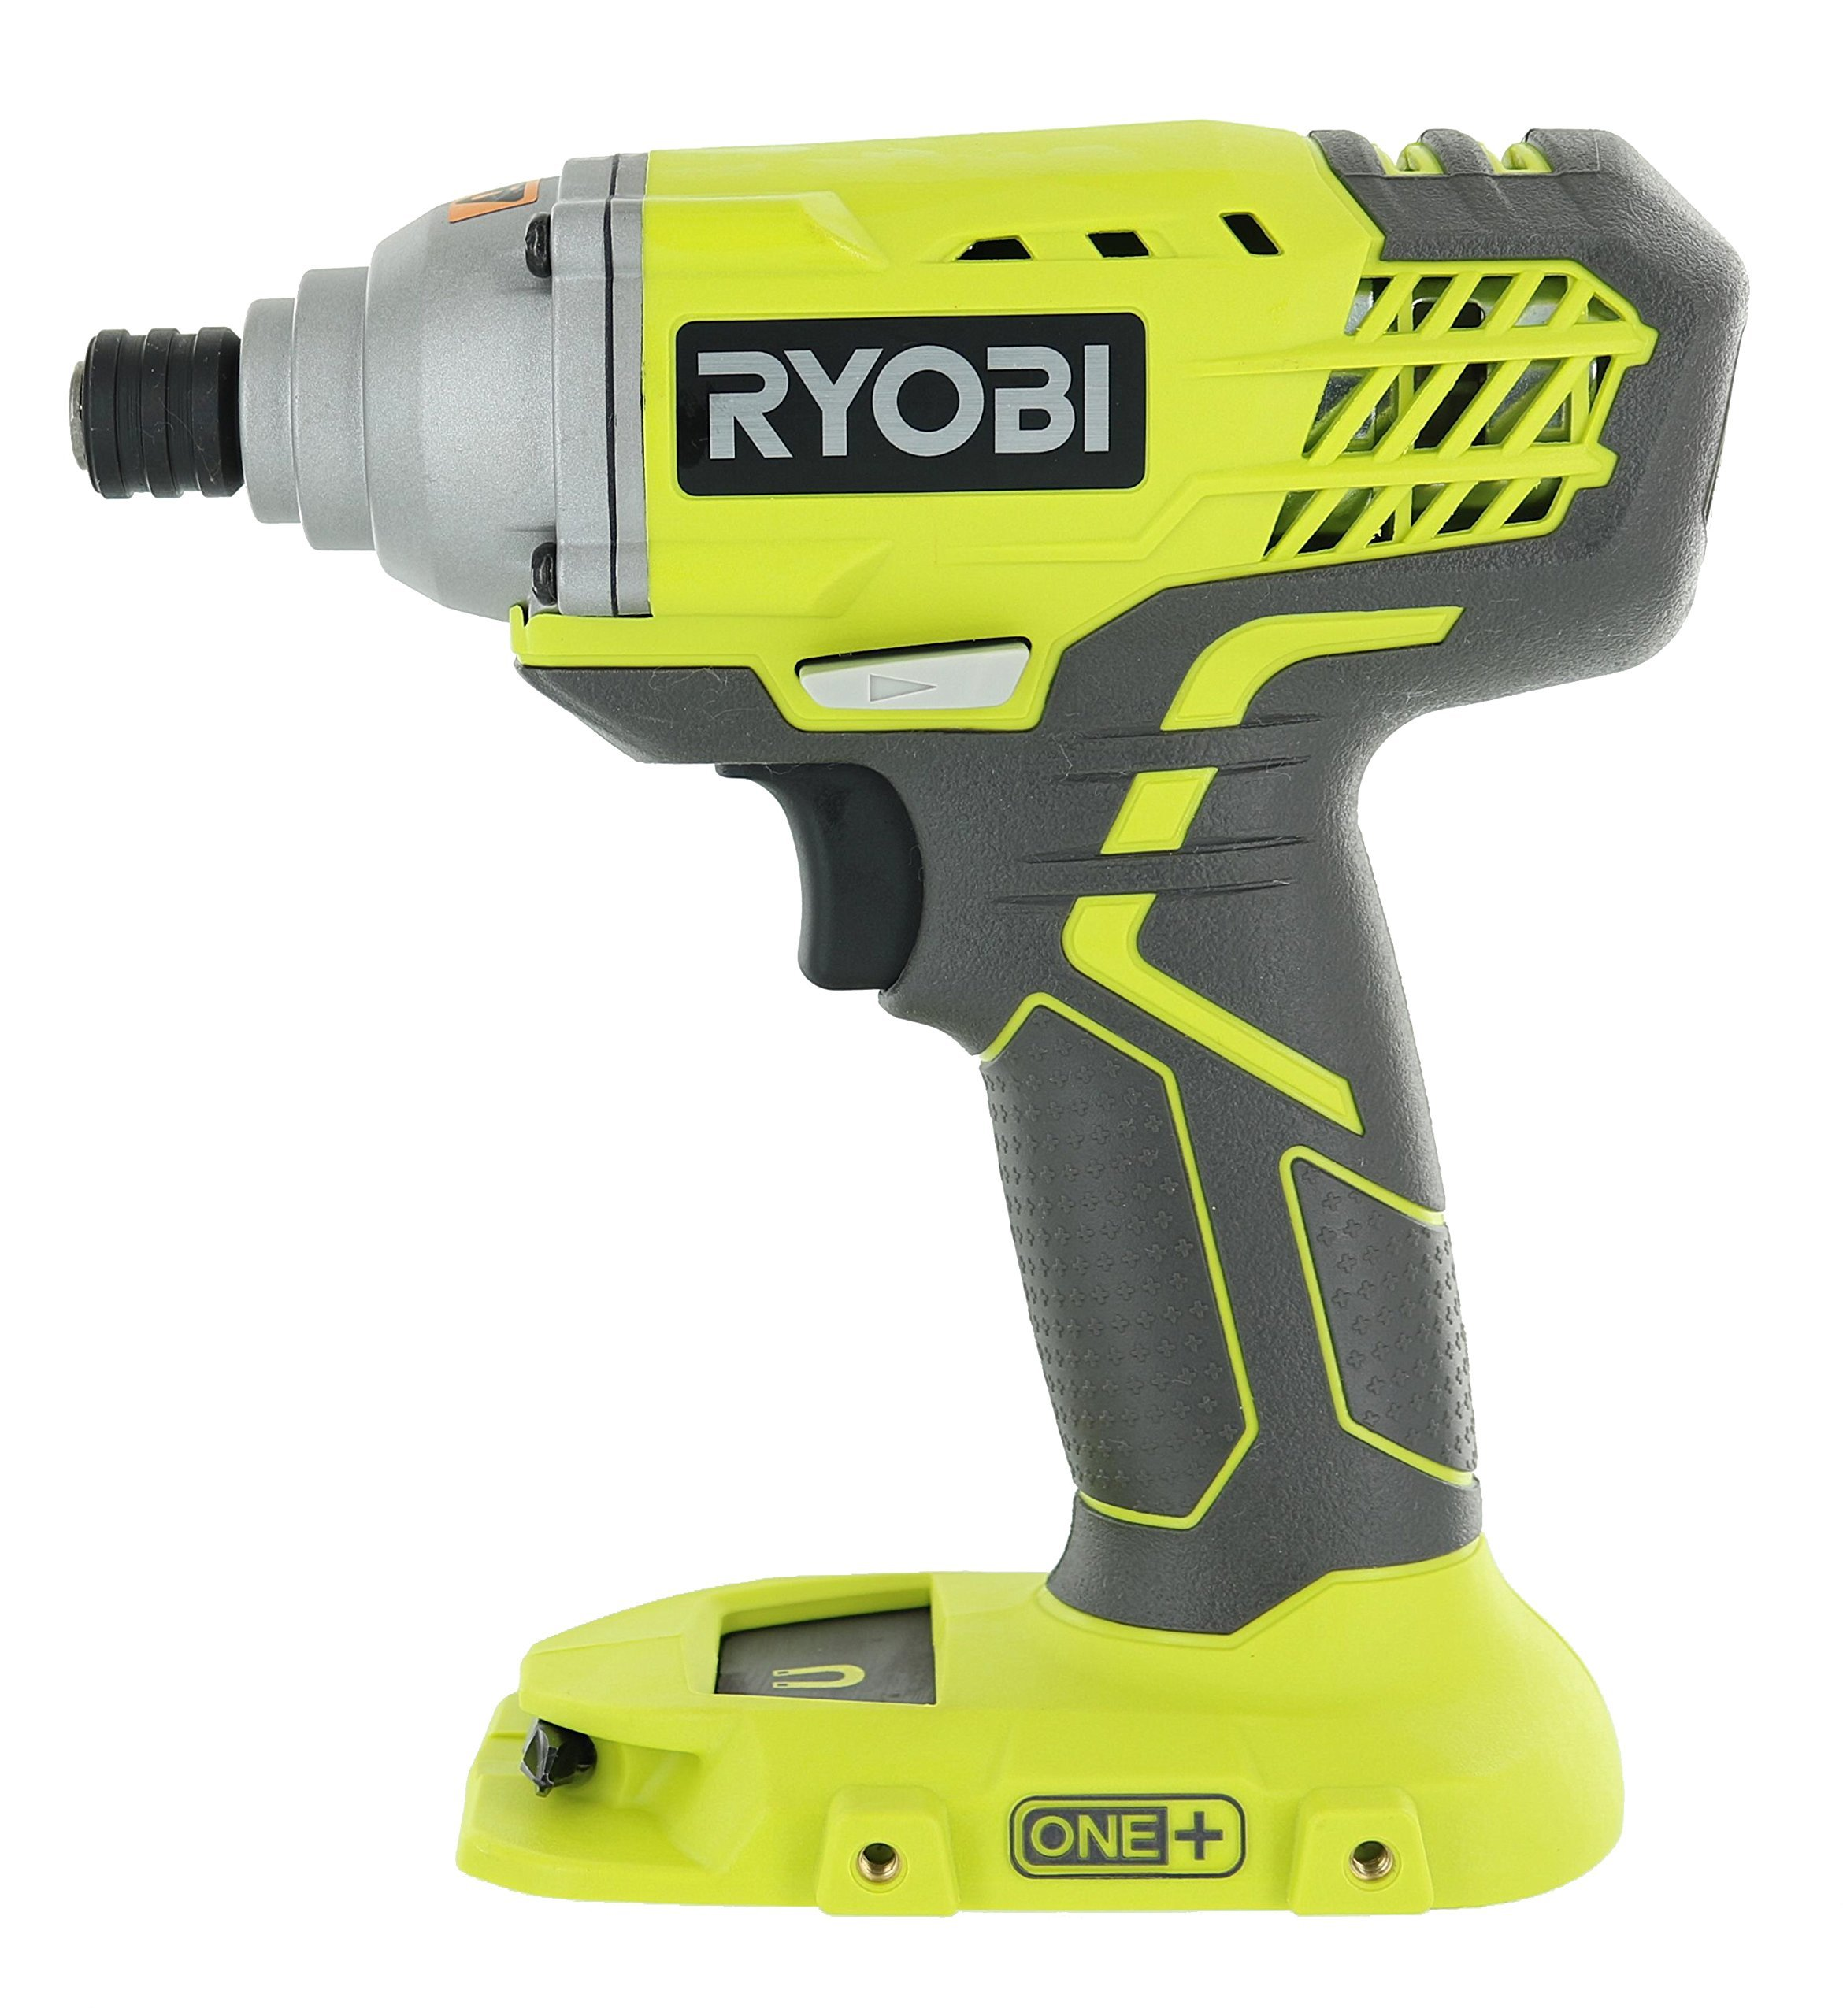 Ryobi P235 1/4 Inch One+ 18 Volt Lithium Ion Impact Driver with 1,600 Pounds of Torque (Battery Not Included, Power Tool Only) (Certified Refurbished)